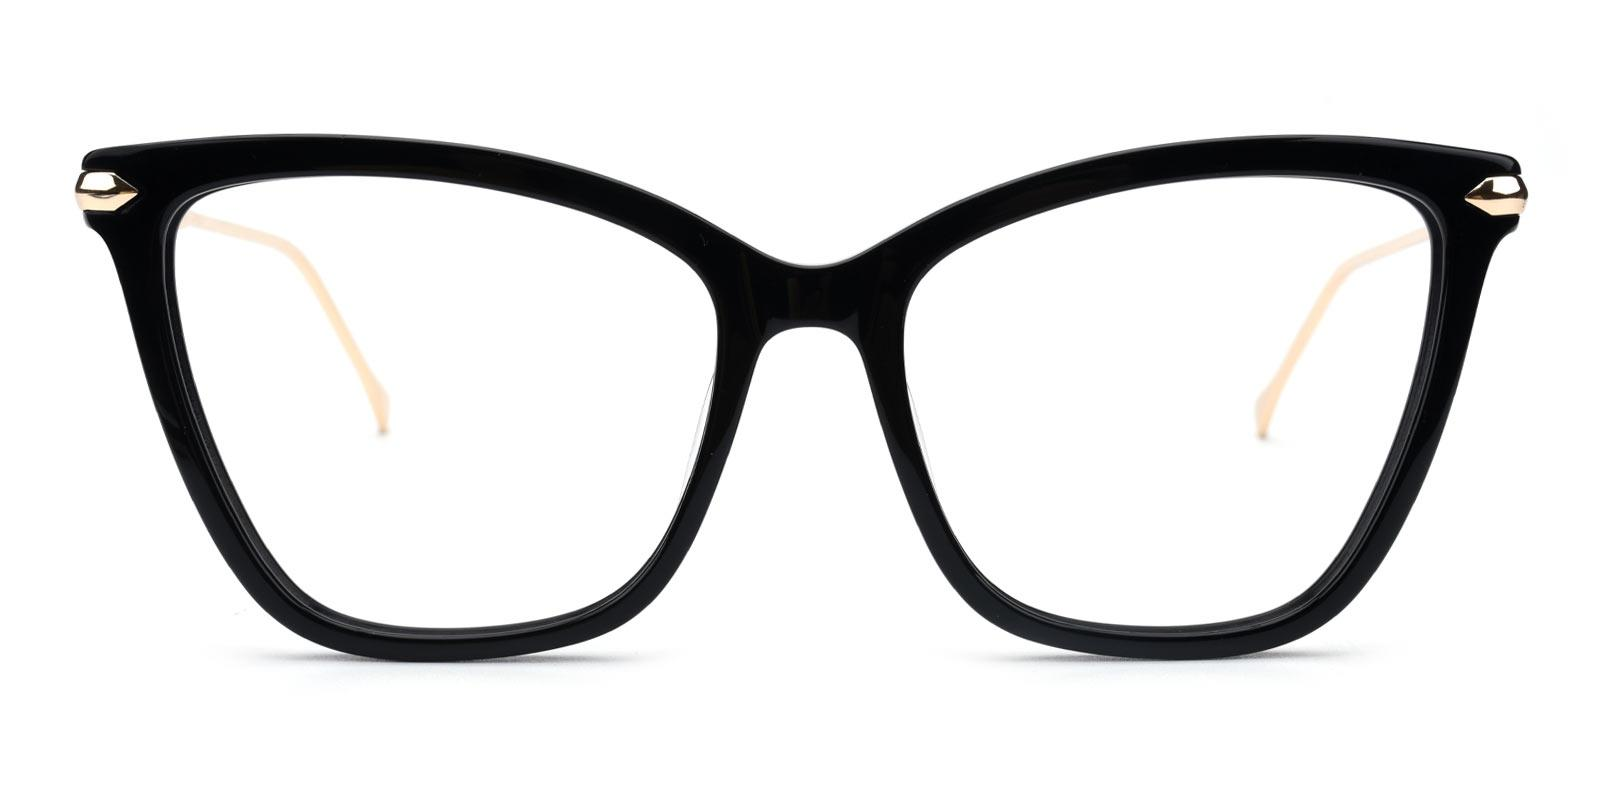 Queenie-Black-Cat-Combination-Eyeglasses-detail